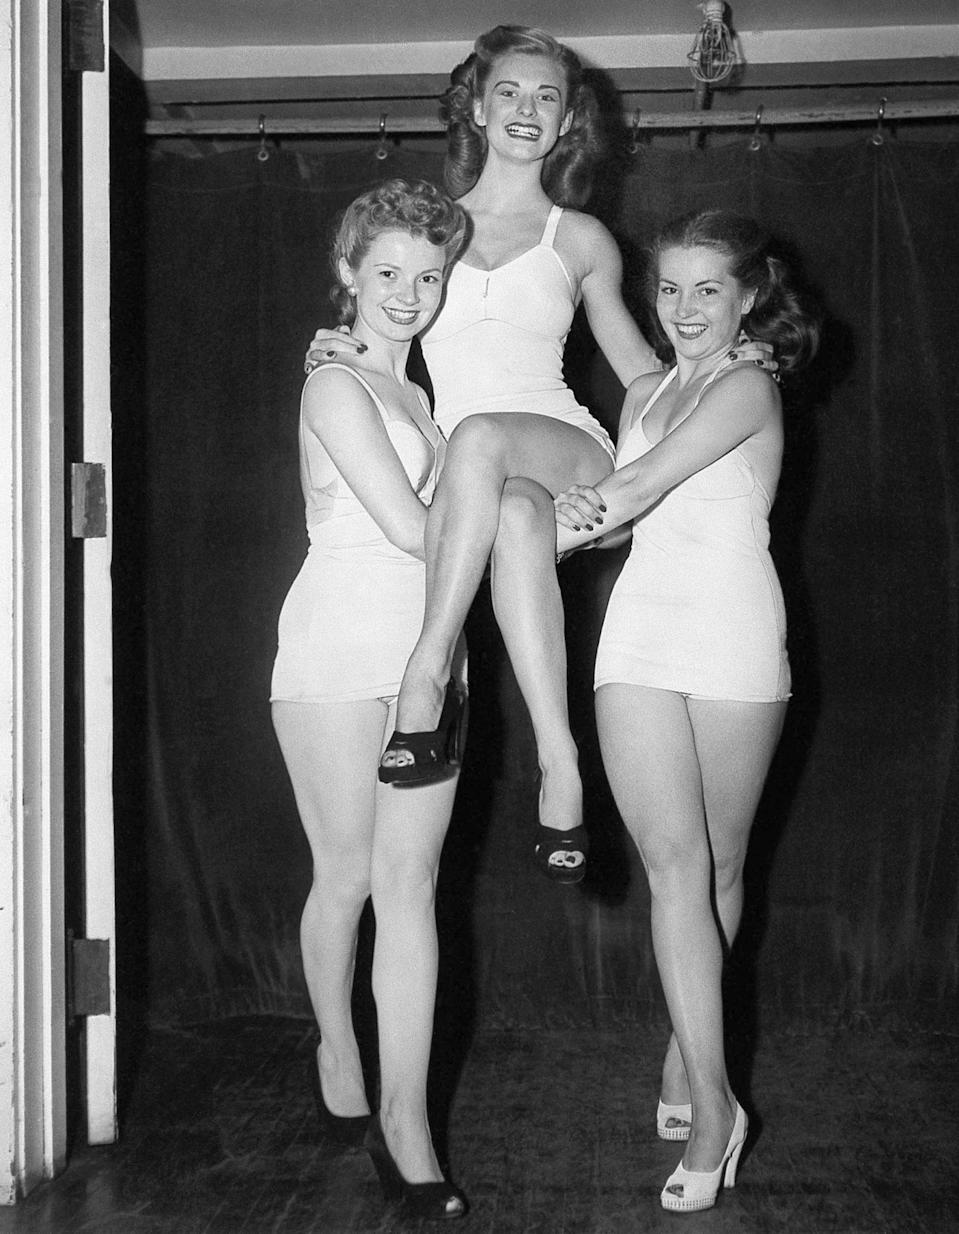 "<p>In college, Leachman set off for Atlantic City, and as Miss Chicago, she was one of the finalists in the 1946 Miss America pageant.</p> <p>""It was really fun,"" she told PEOPLE in 2008. ""You had to get yourself together — do your own makeup, your own hair and what you were going to wear. My mother was with me the whole time. My father came the last two days [of the competition]."" </p>"